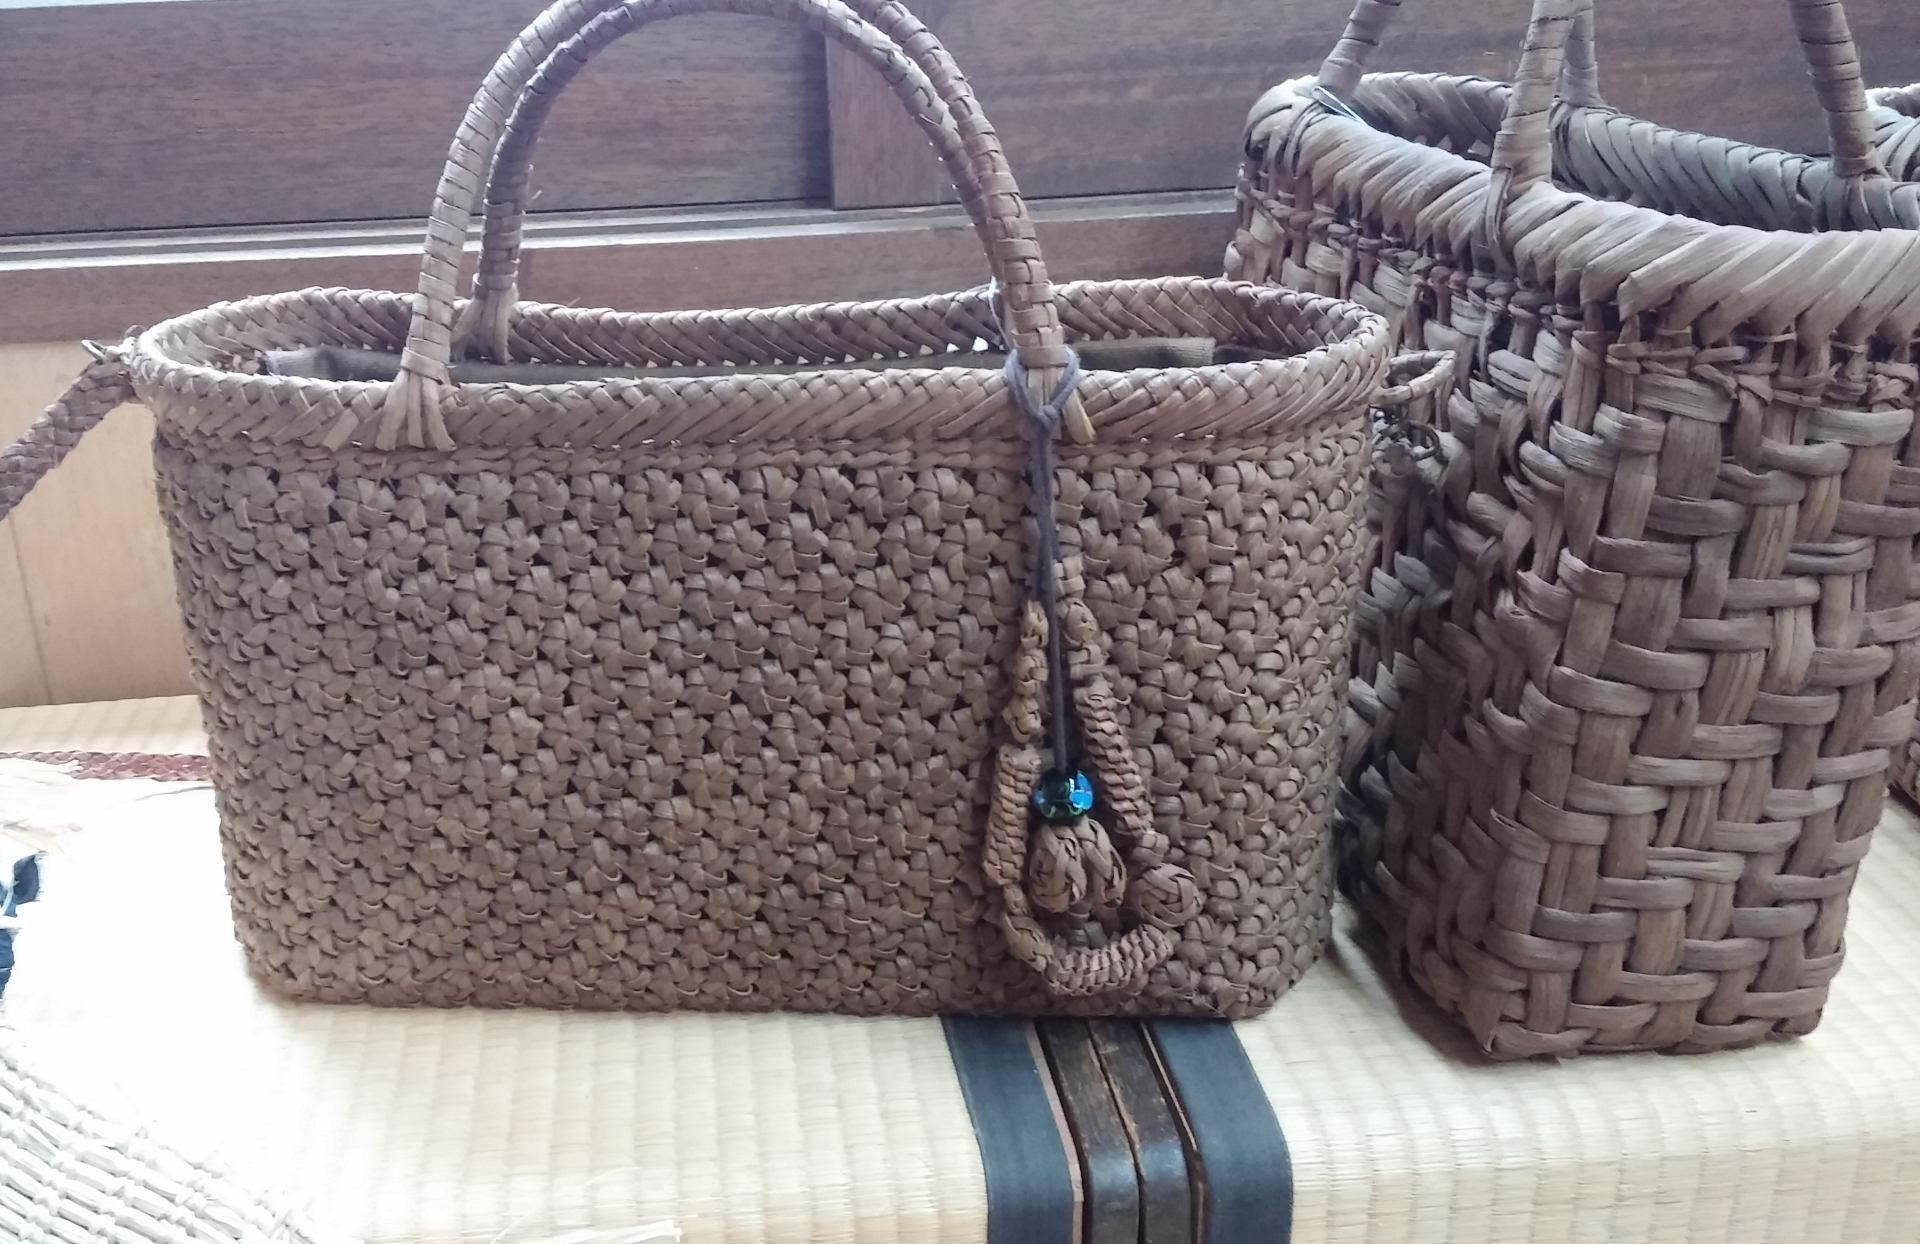 Recently, very stylish bags have also become popular.